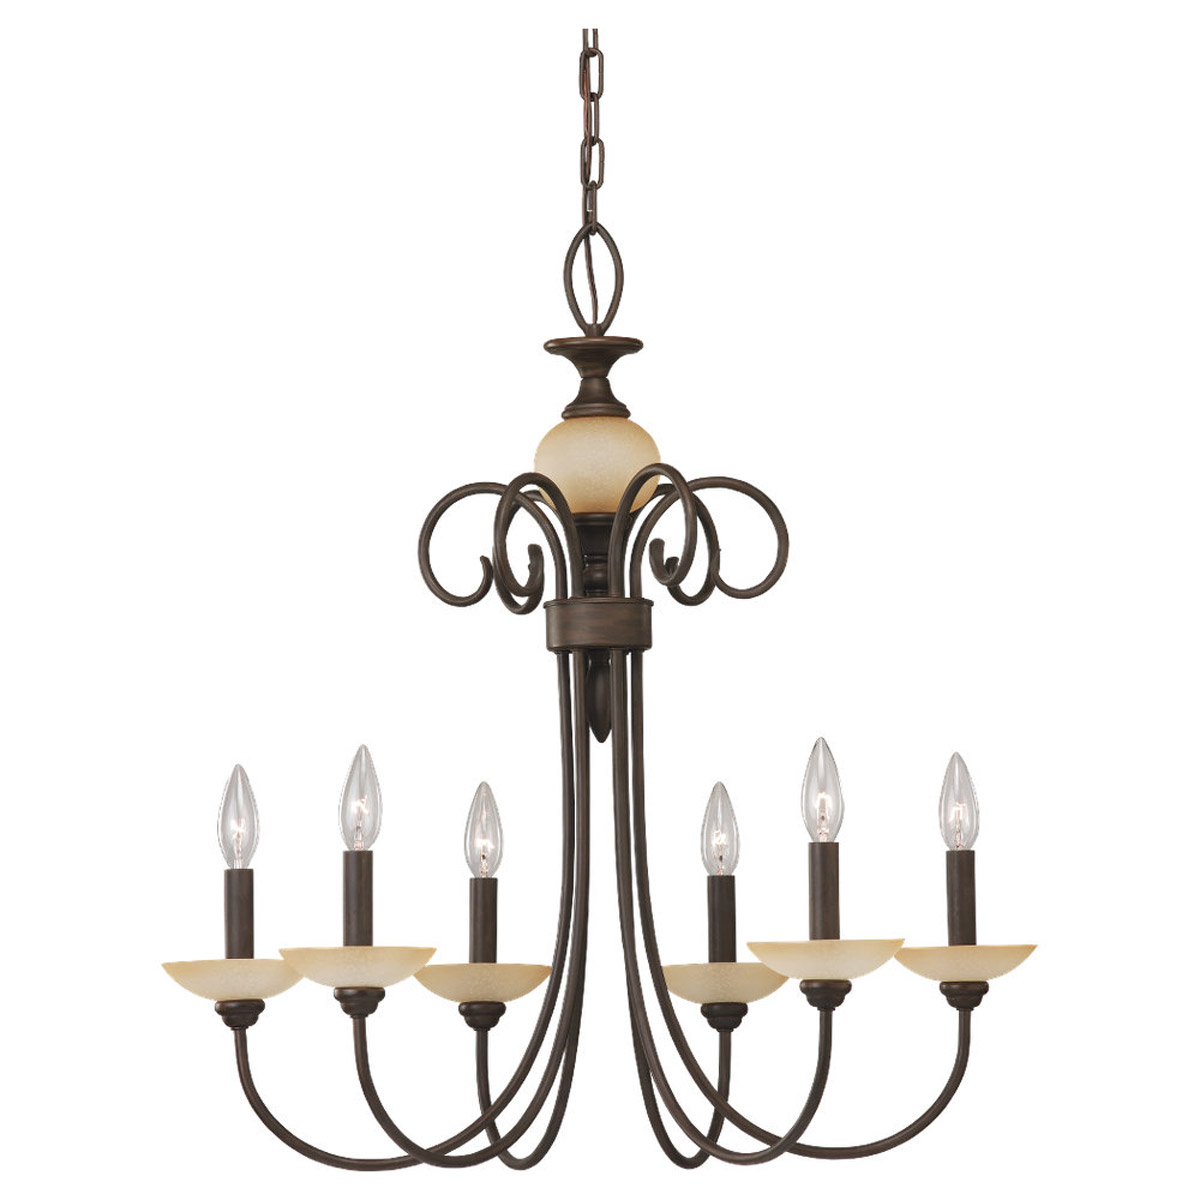 Sea Gull Lighting Montclaire 6 Light Chandelier in Olde Iron 31107-72 photo